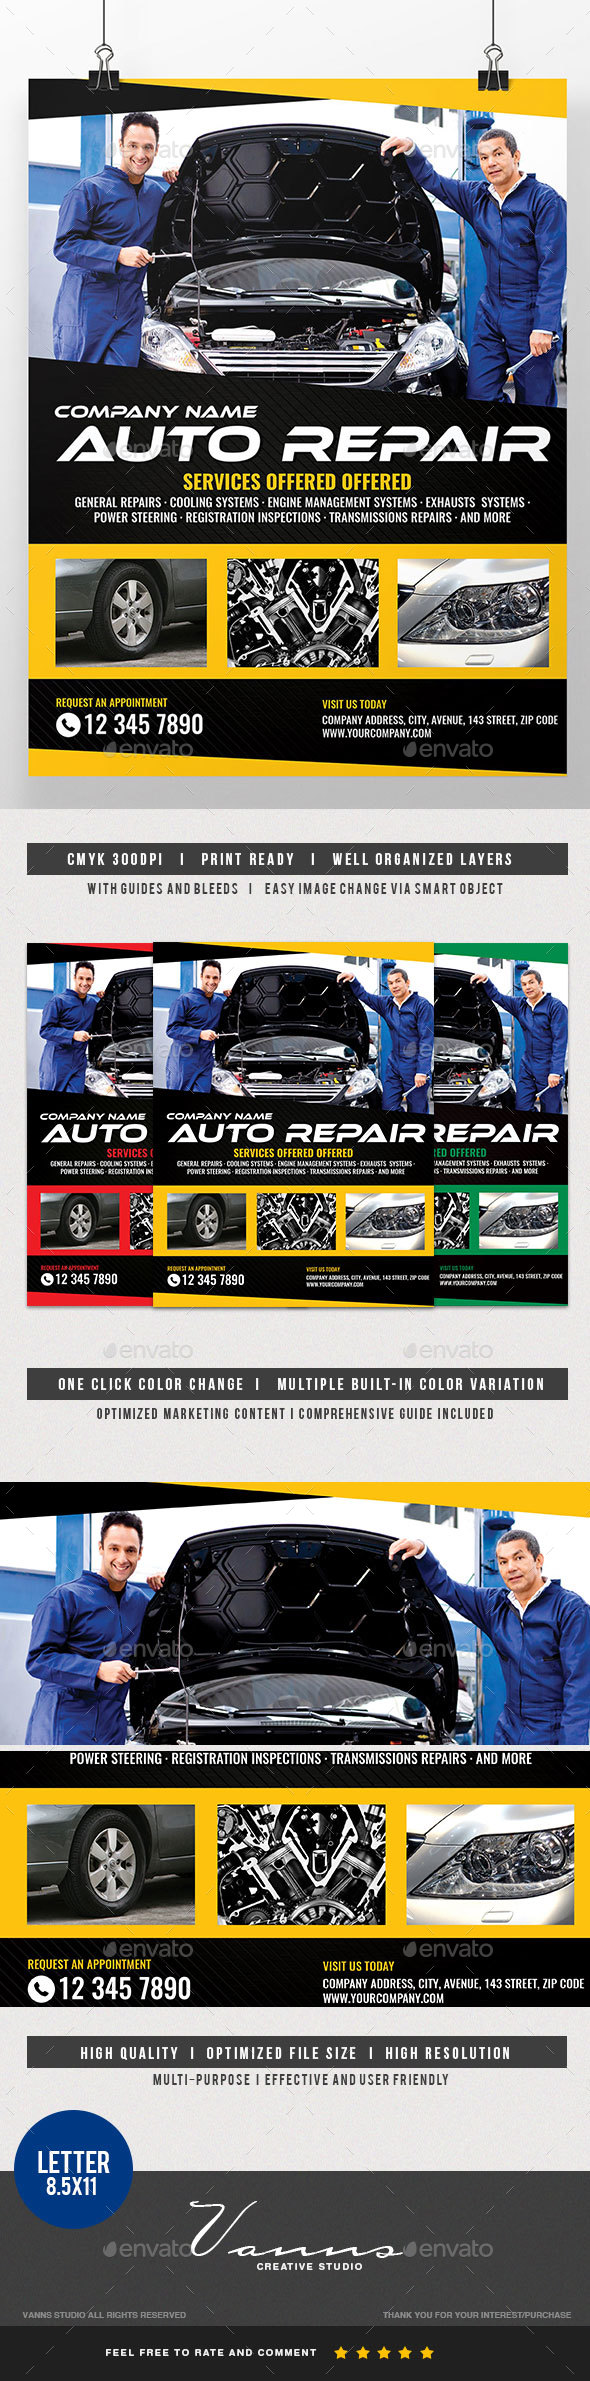 car repair graphics designs templates from graphicriver